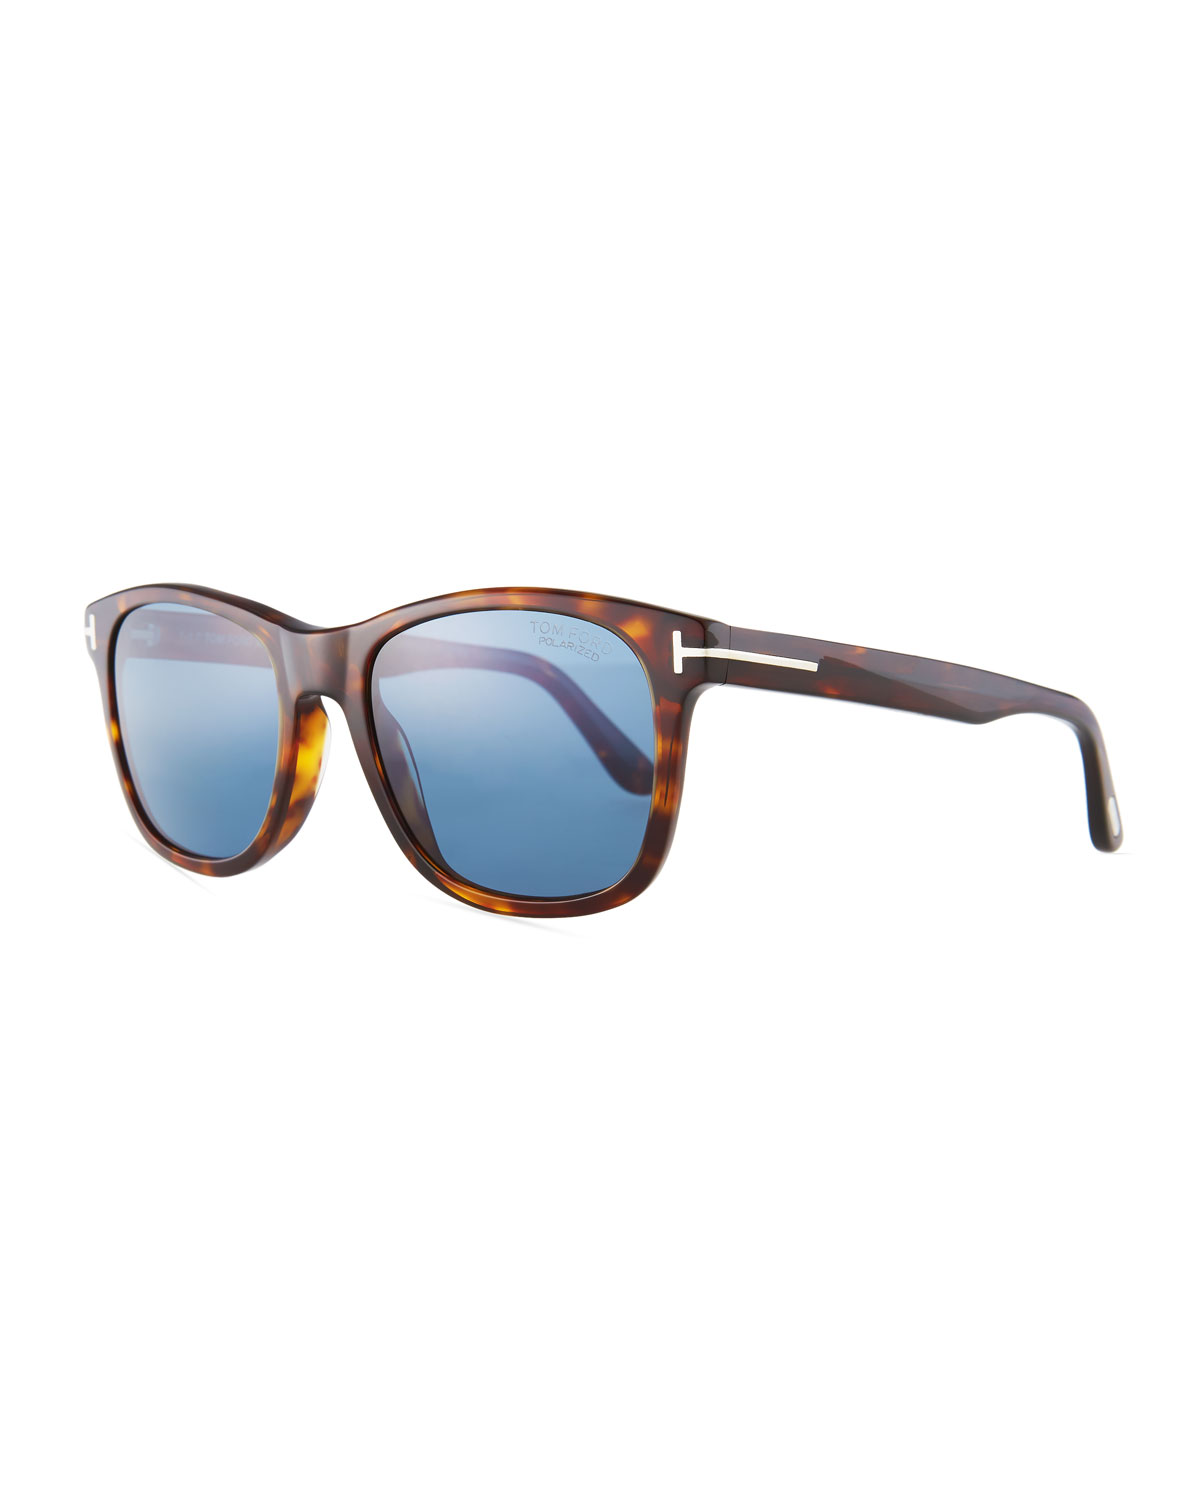 61134eddf9 TOM FORD Eric Rectangular Havana Sunglasses